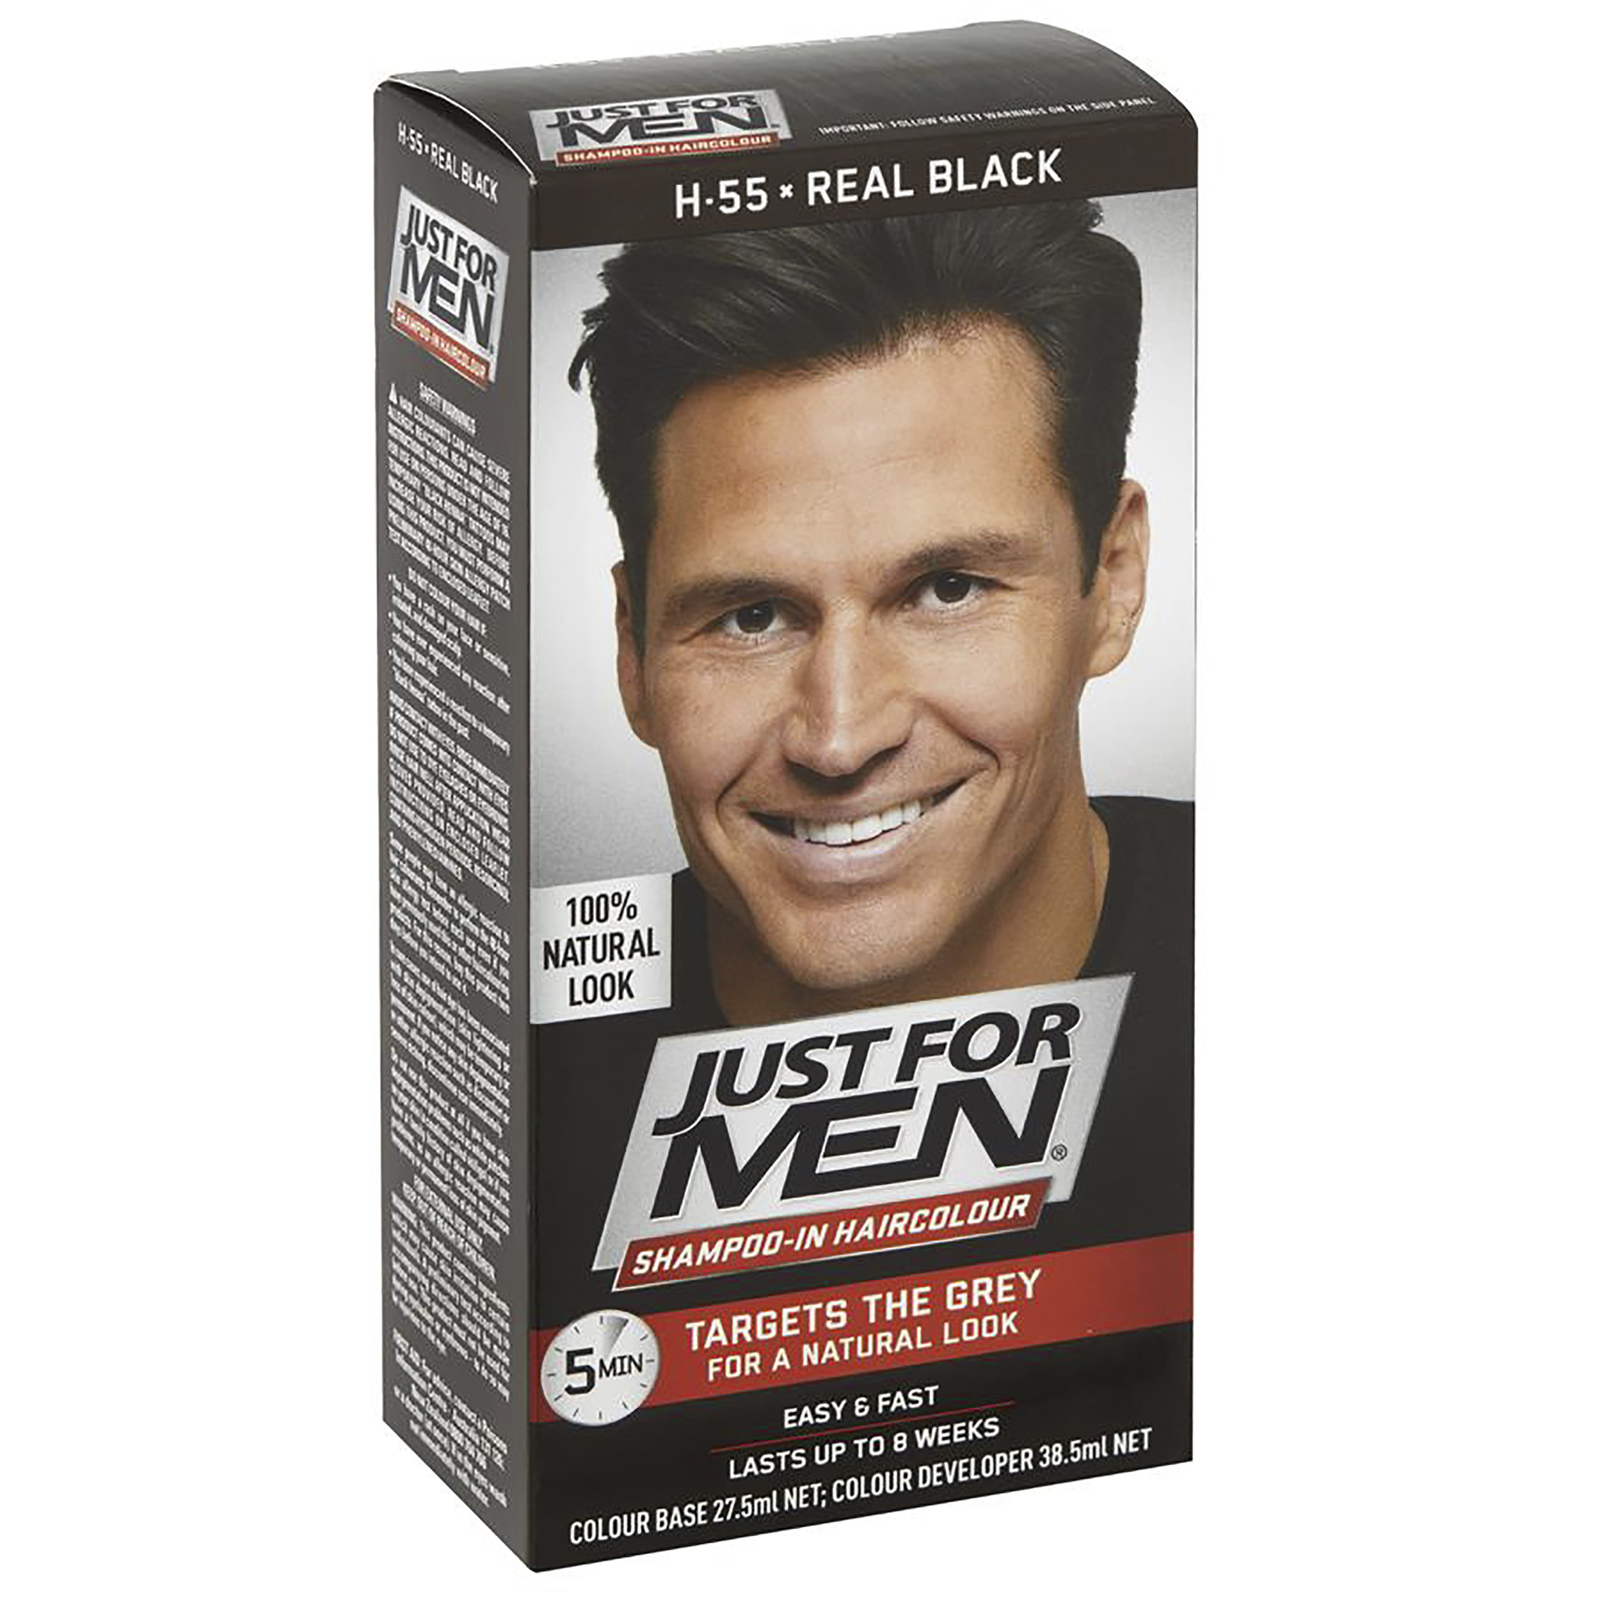 Just For Men Shampoo-In Hair Colour - Real Black image